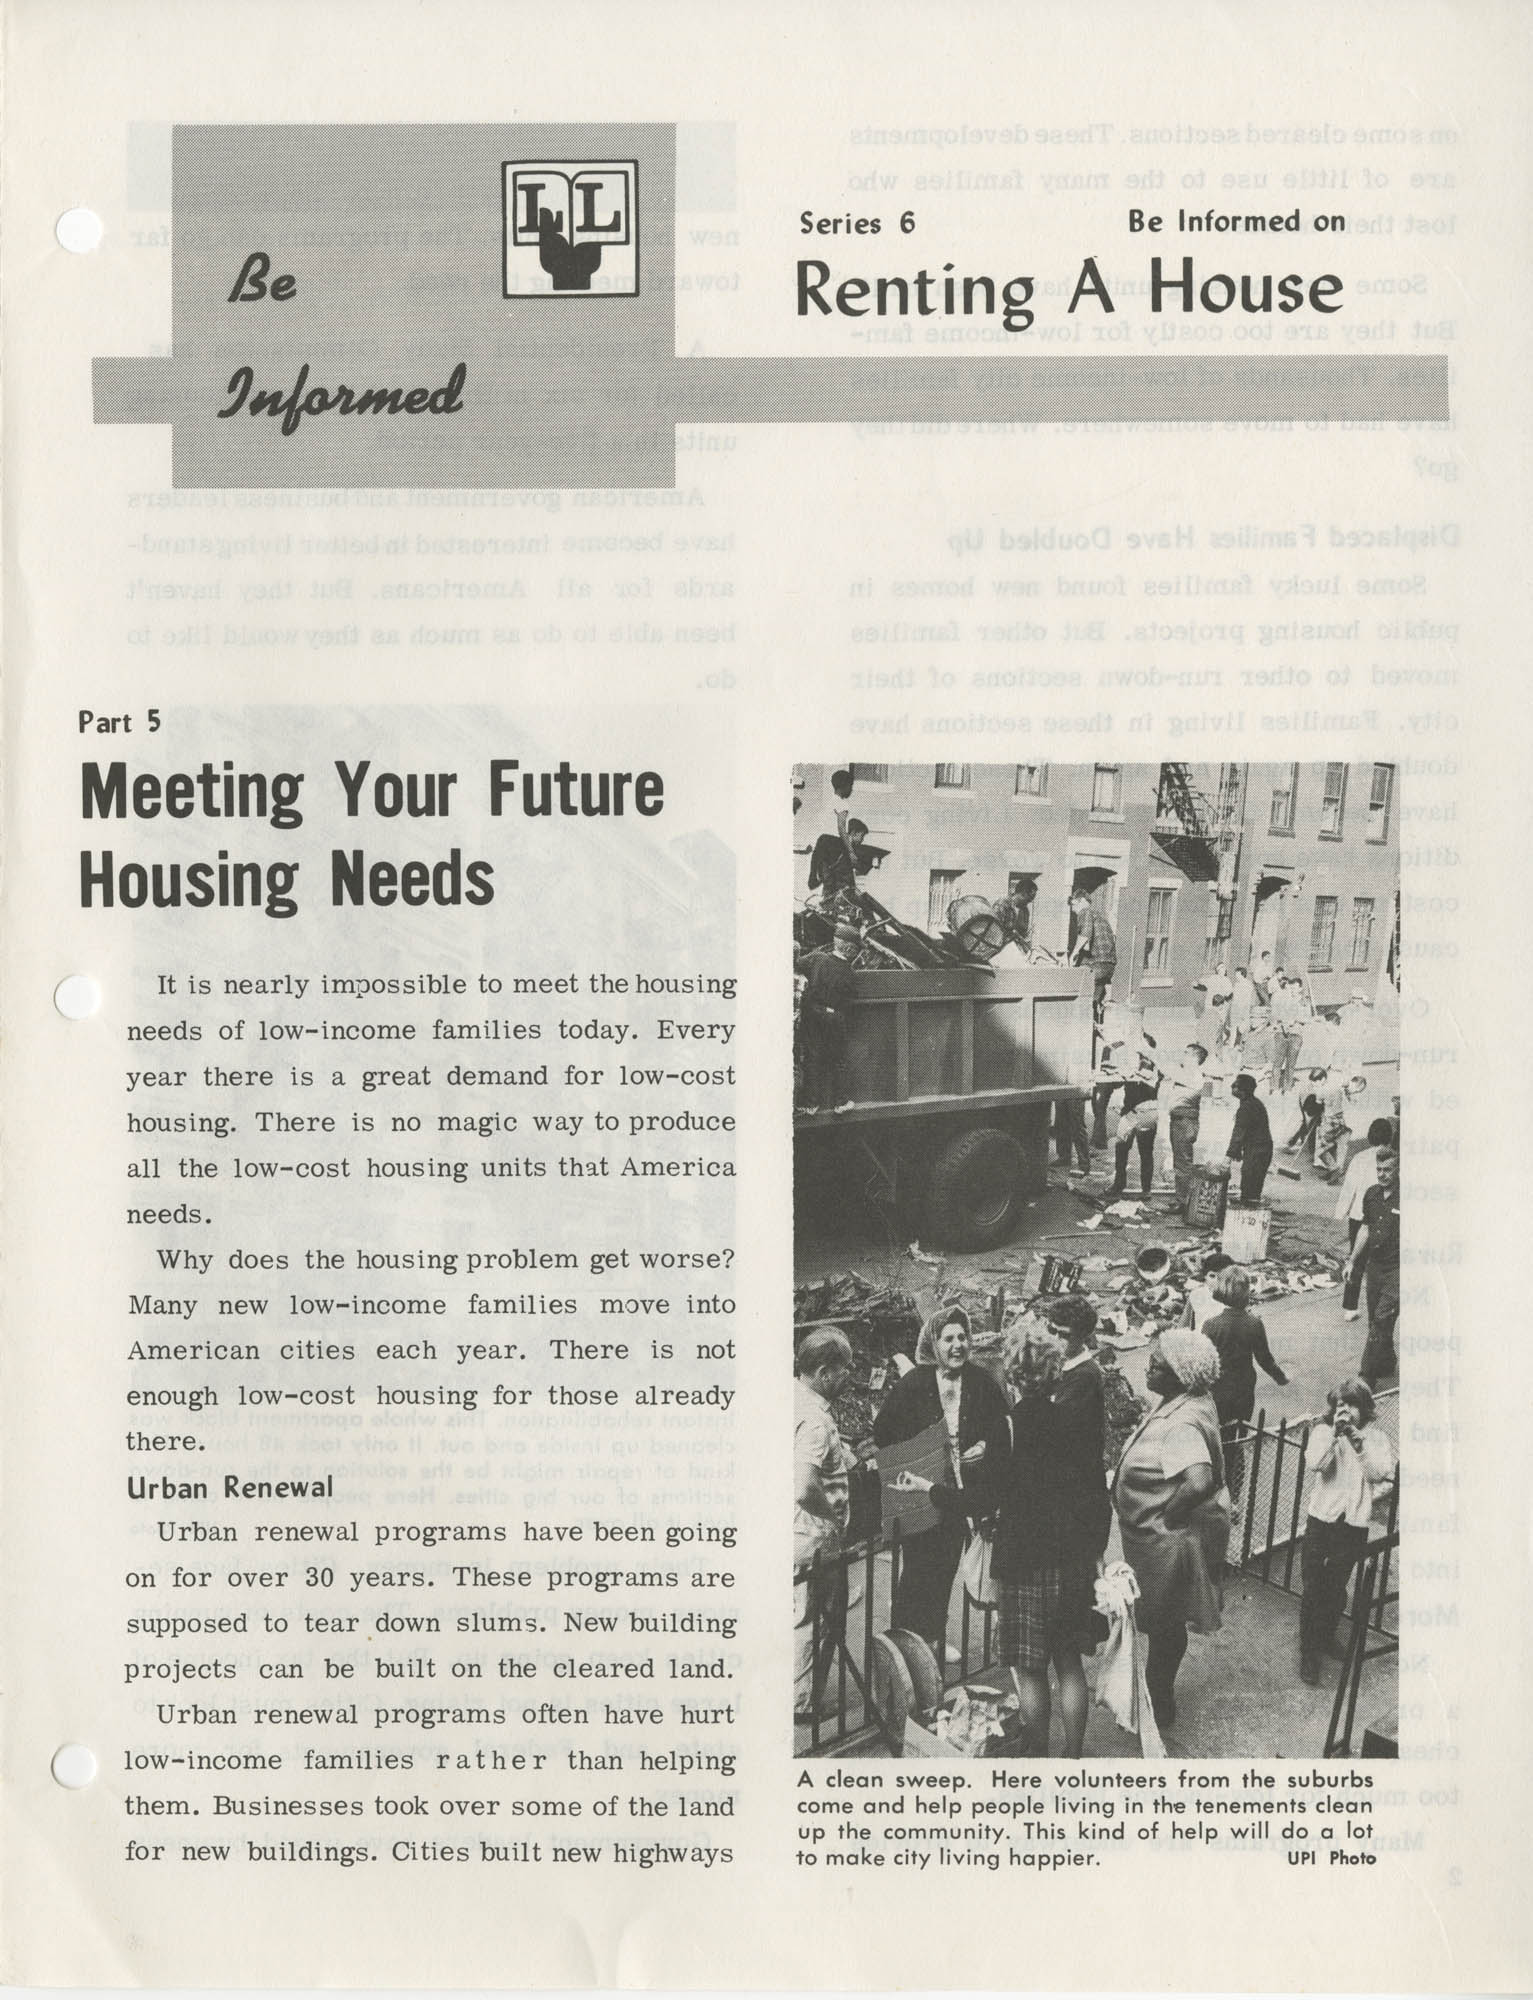 Be Informed, Renting A House, Part 5